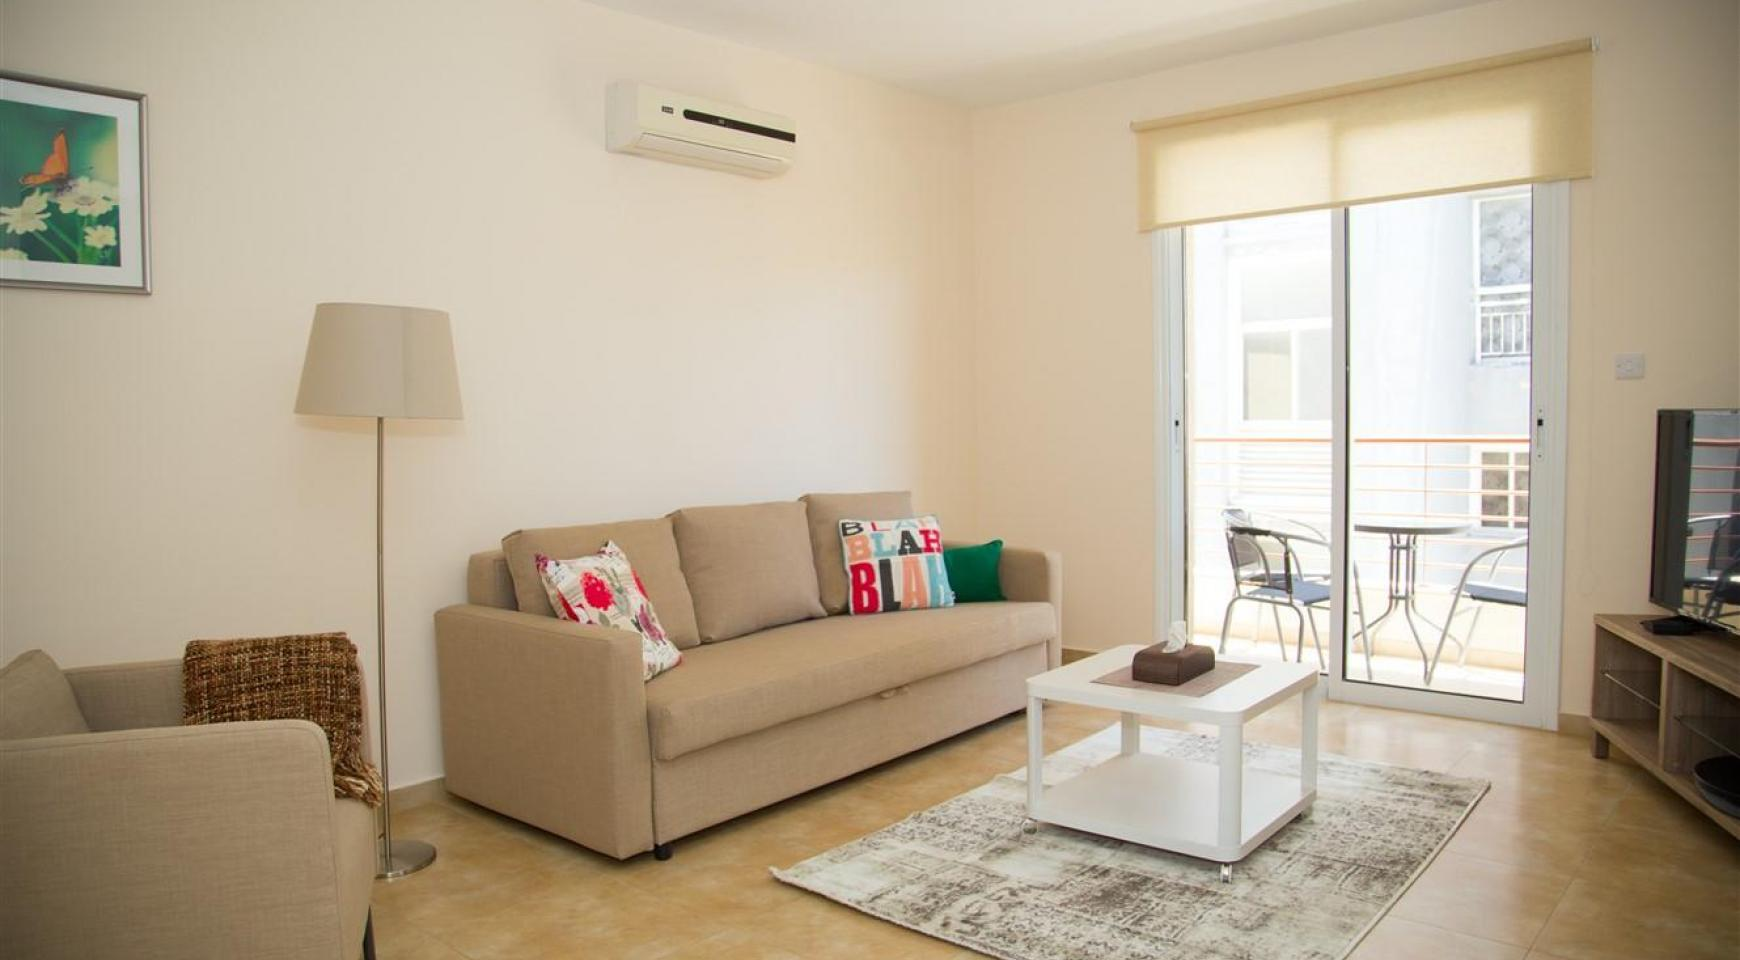 Luxury One Bedroom Apartment Frida 203 in the Tourist Area - 1